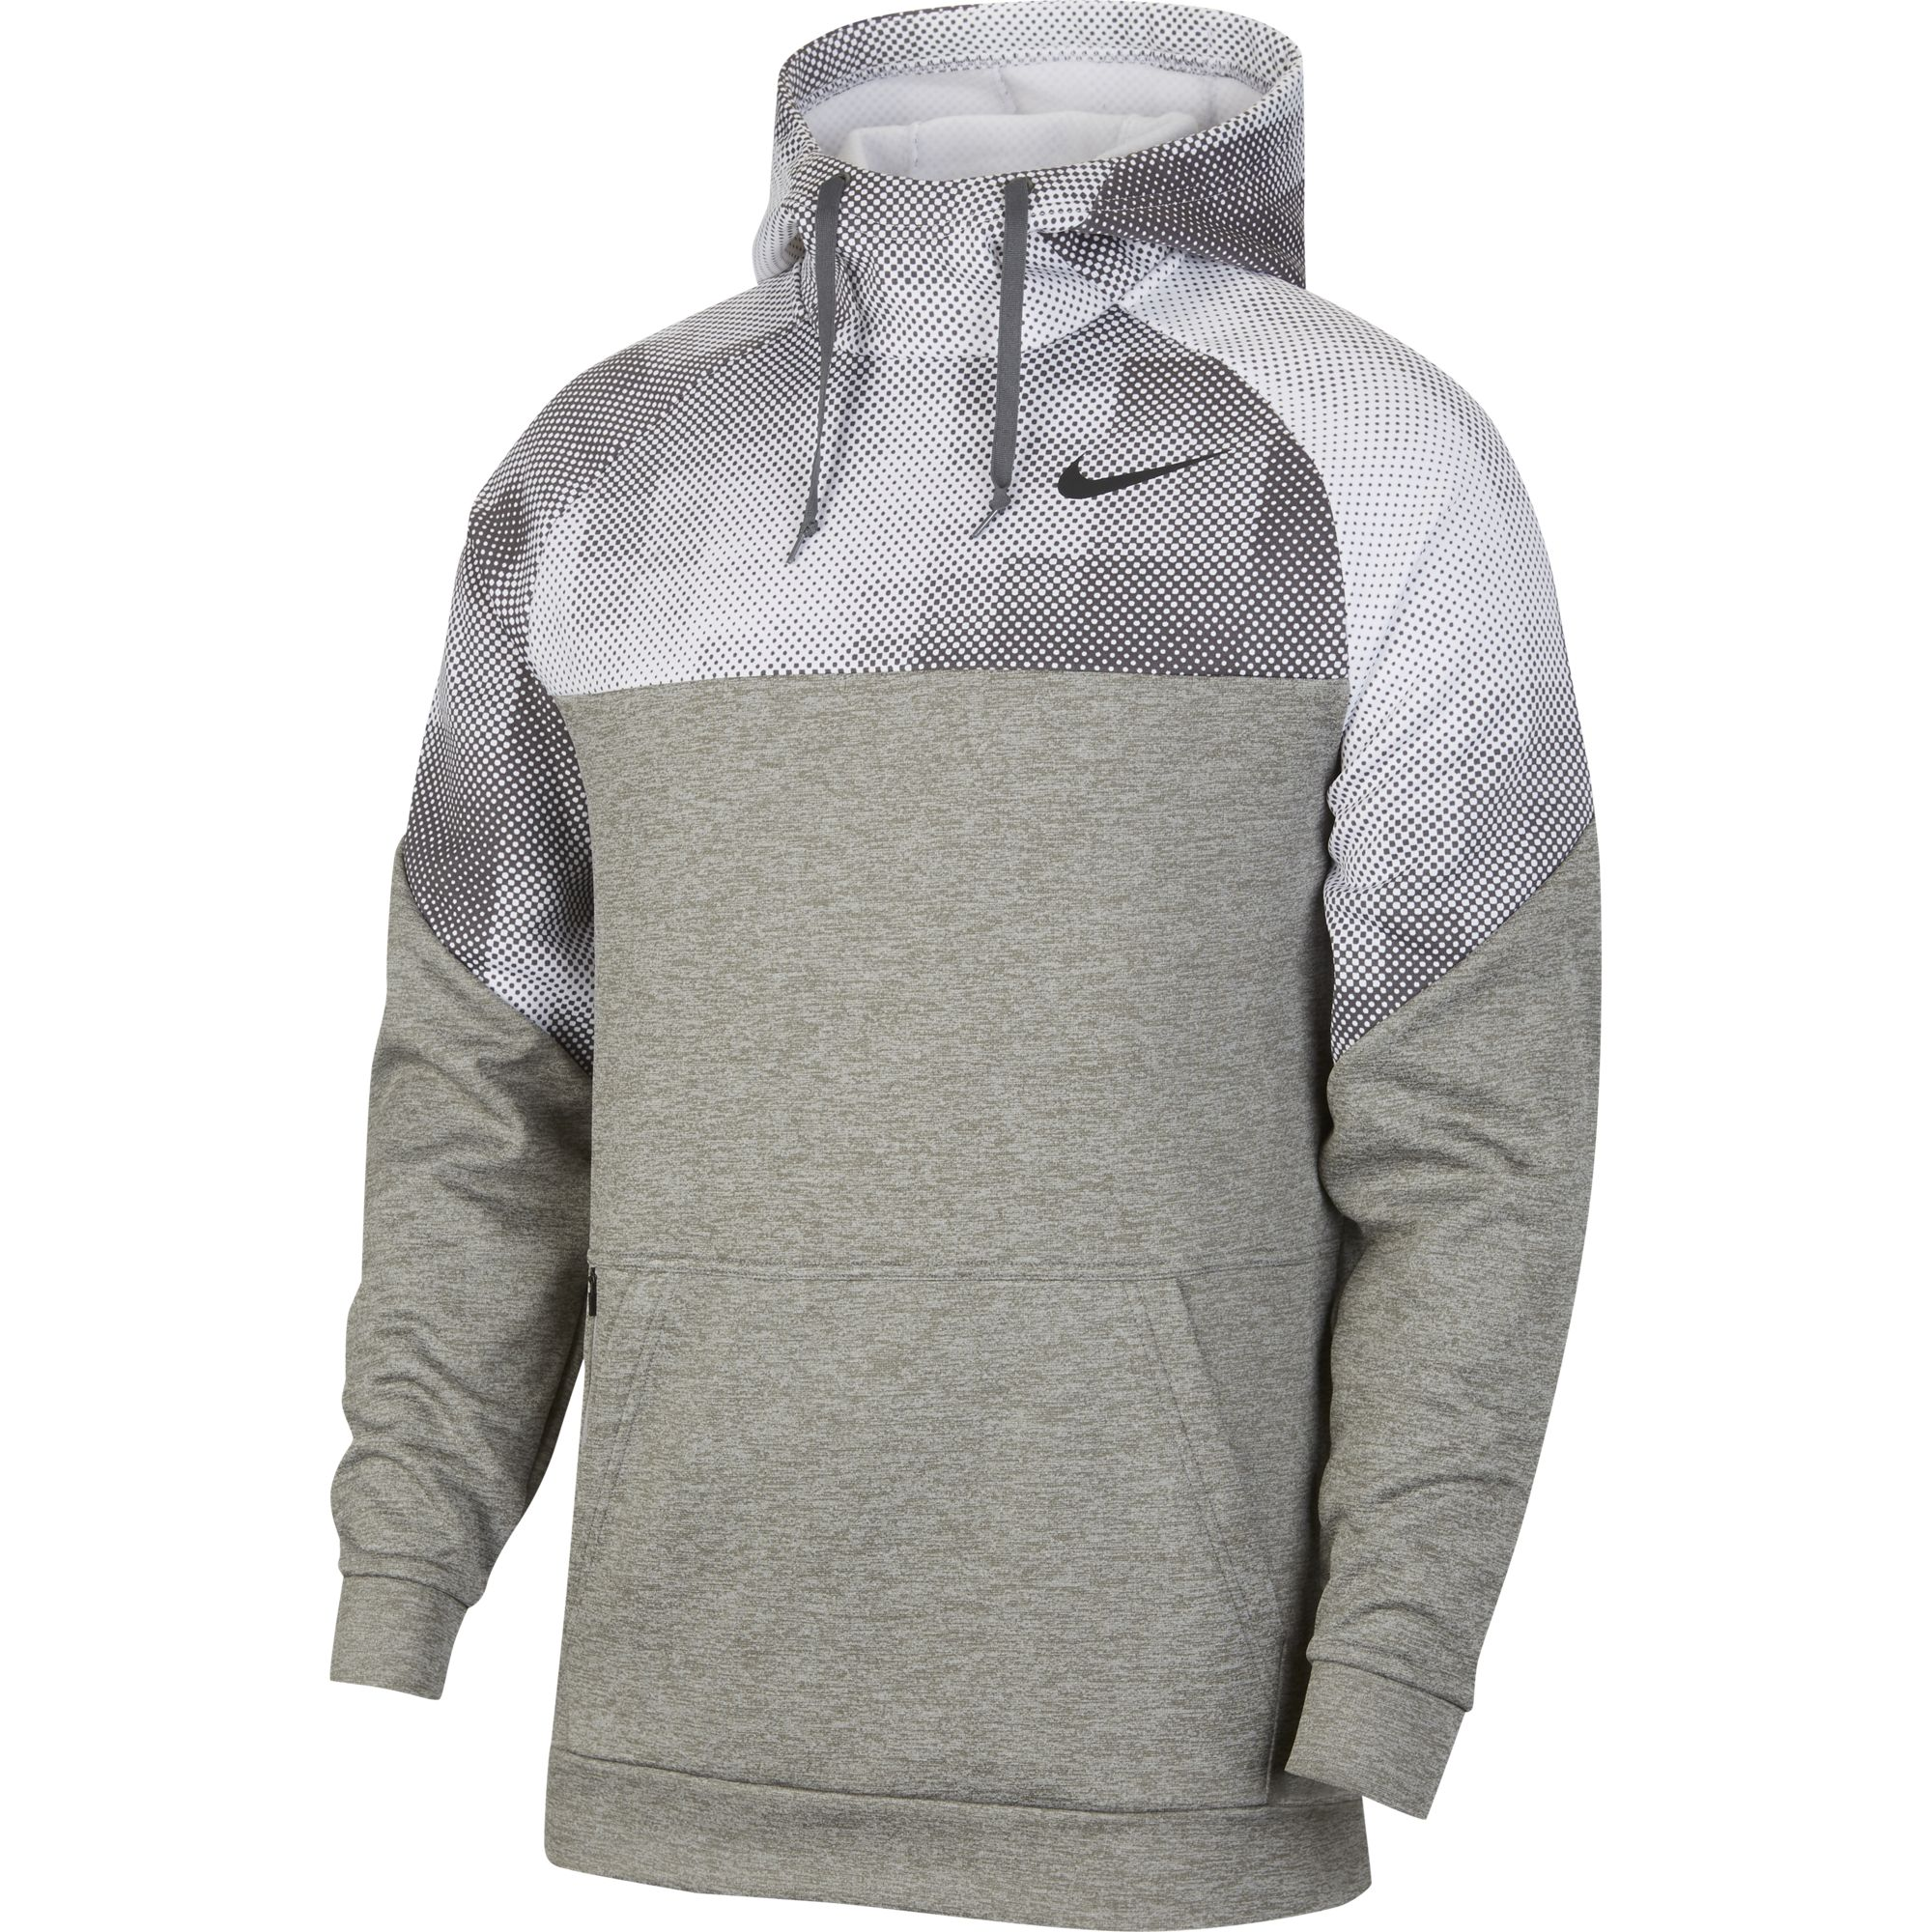 Men's Therma Pullover Hoodie, Heather Gray, swatch